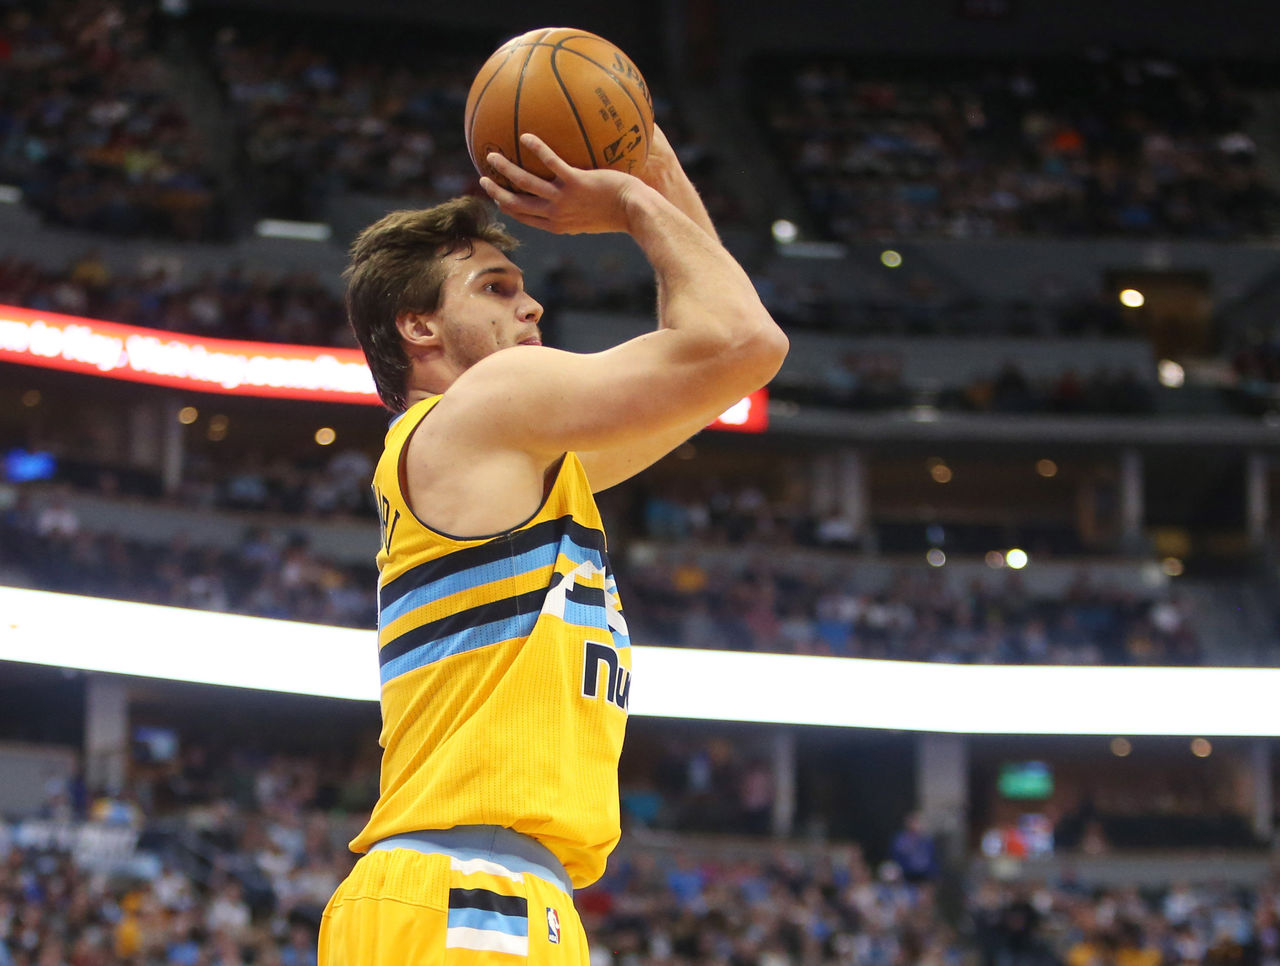 Cropped 2017 04 09t213808z 234616060 nocid rtrmadp 3 nba oklahoma city thunder at denver nuggets